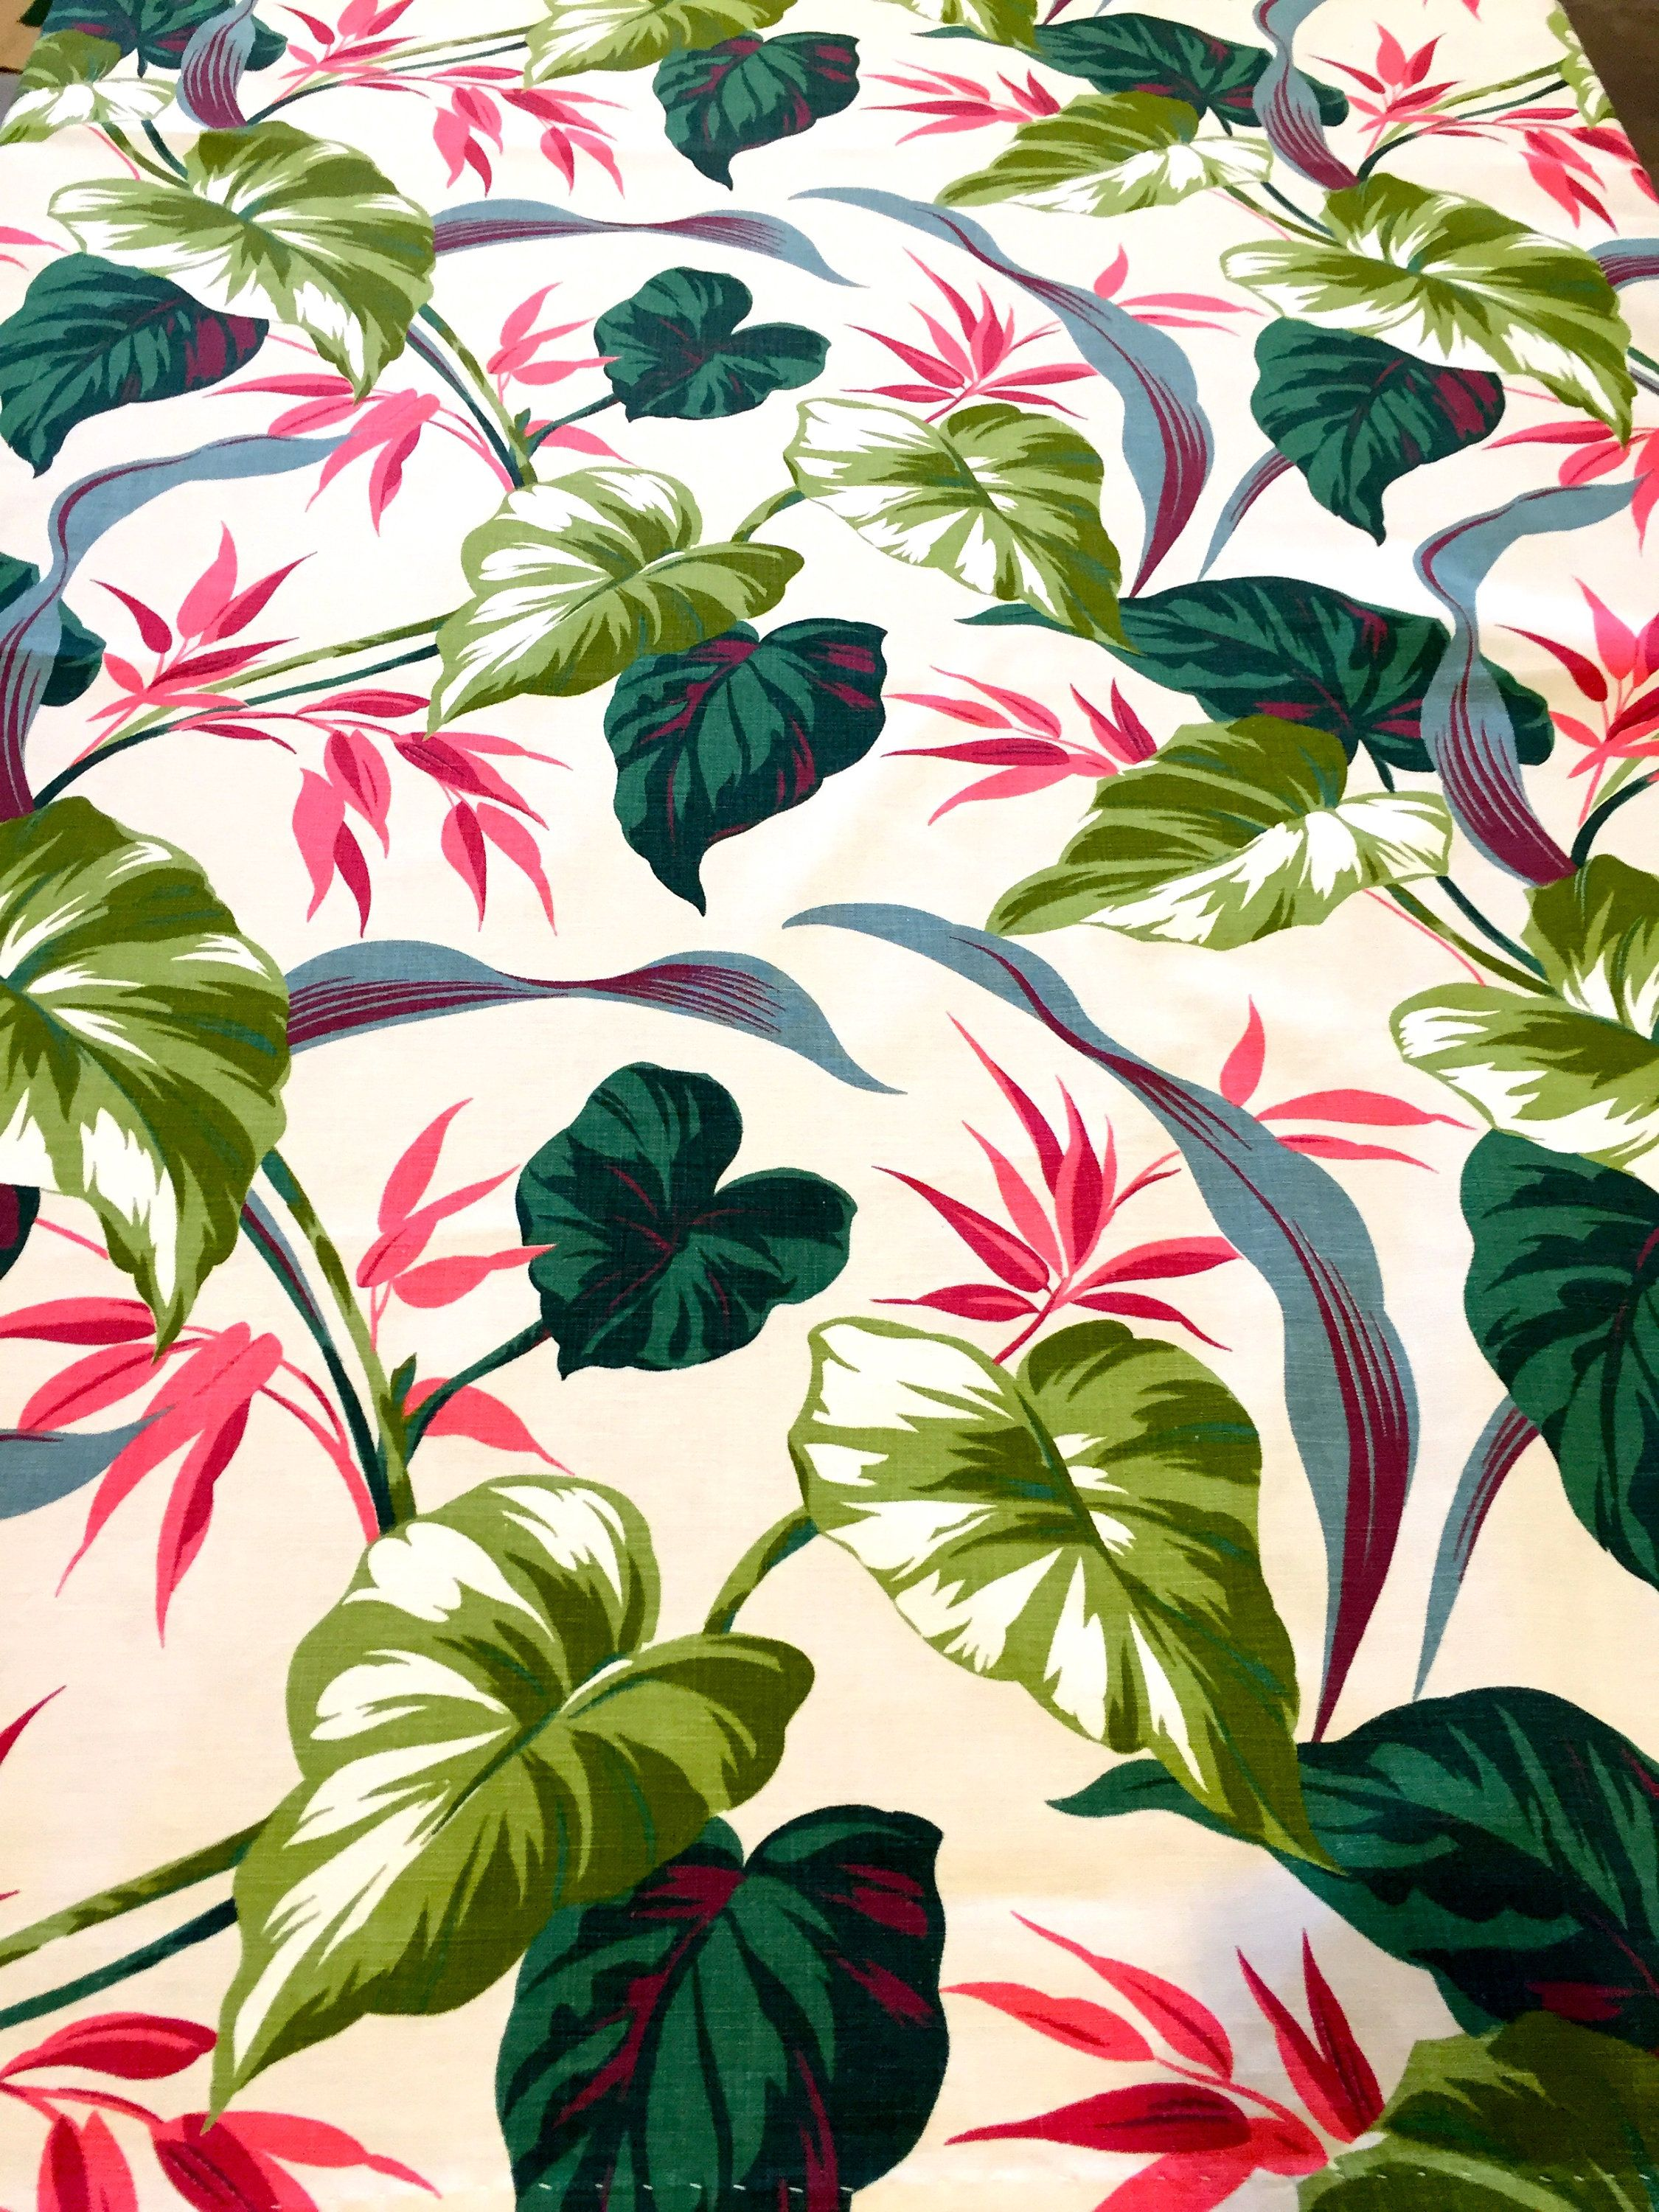 Fantastic 40s Tropical Barkcloth Era Fabric In A Stunning Color Palate//  Cotton Yardage/